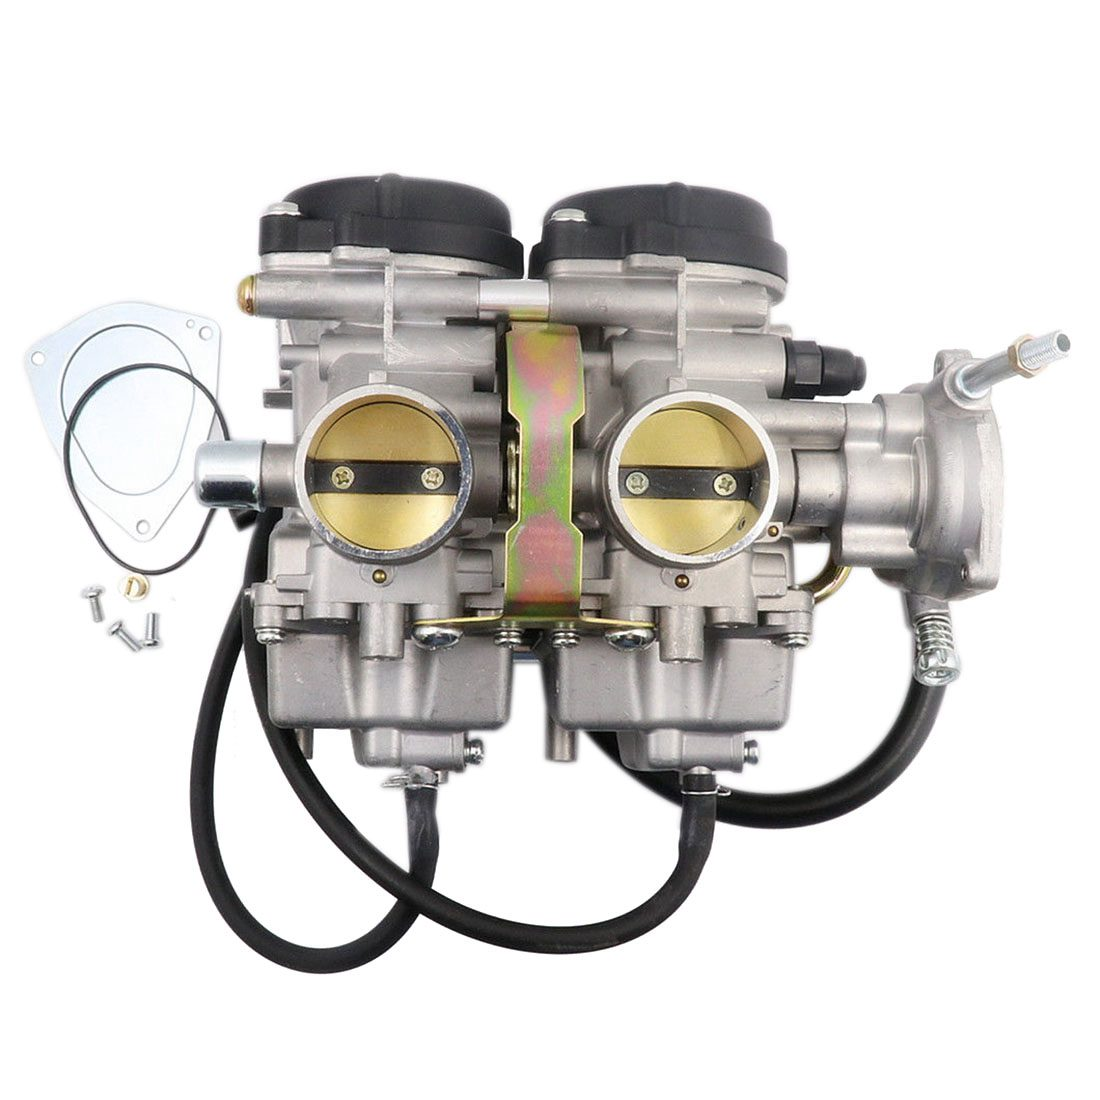 New Carburetor for YAMAHA RAPTOR 660 YFM660 2001-2005 Carb trx 500 foreman carburetor carb 2005 2011 brand new highest quality